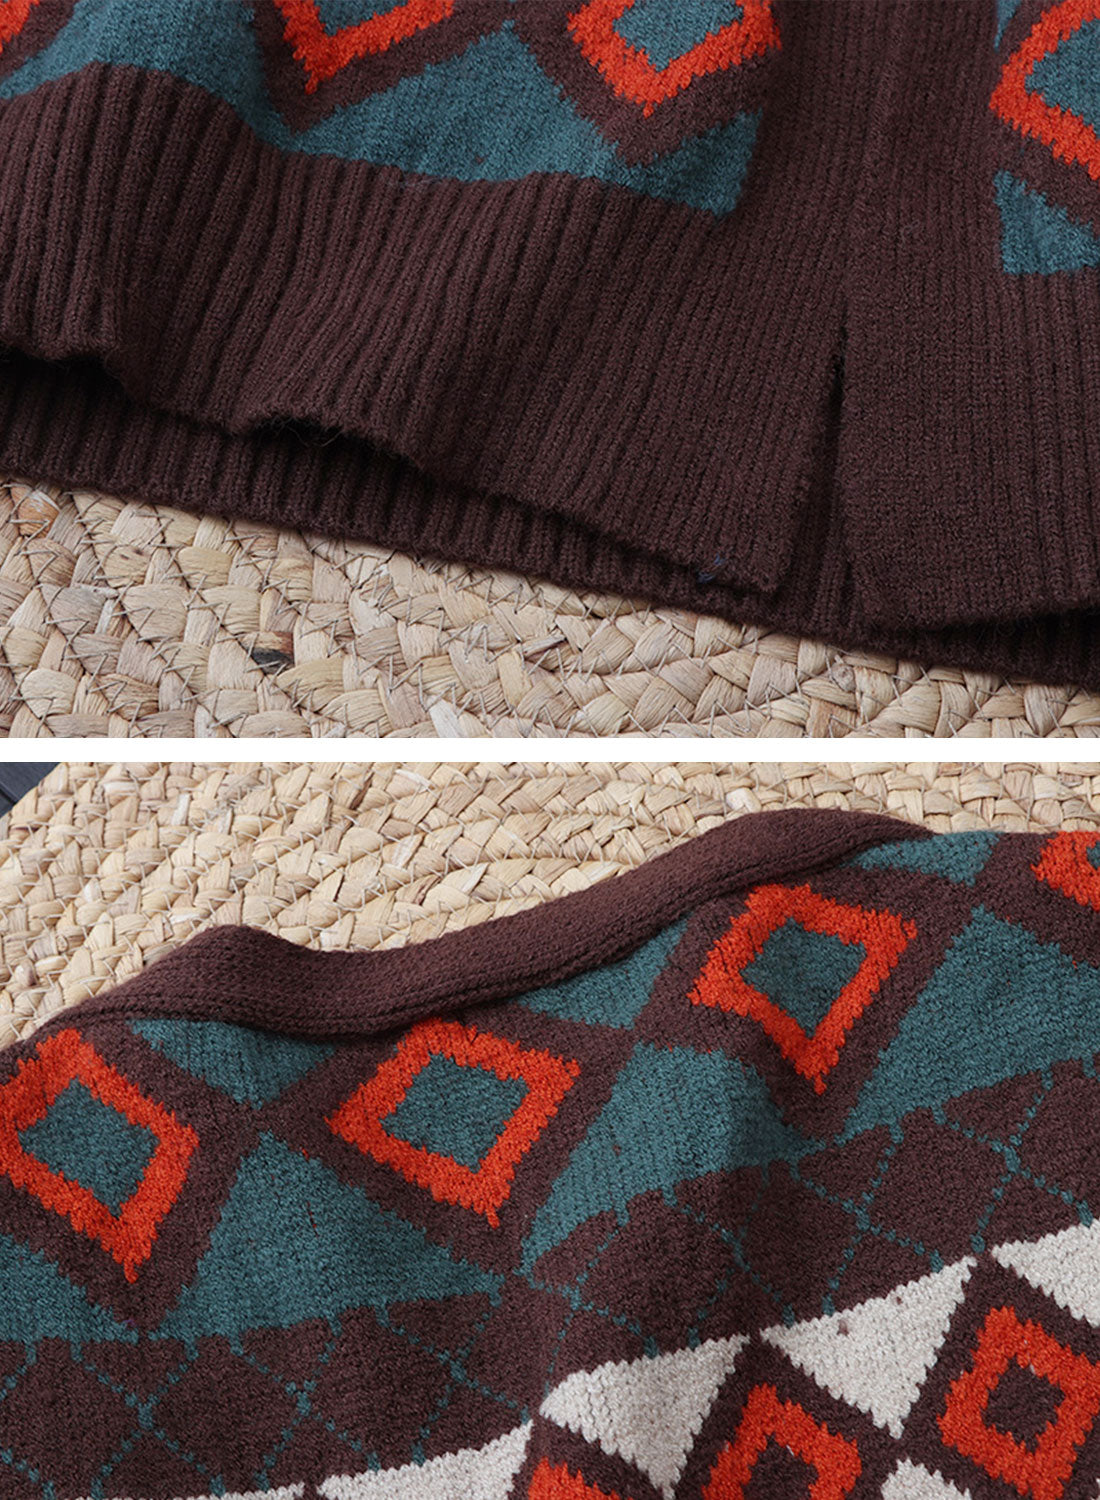 You Know Vintage Cardigan Sweater Details 3